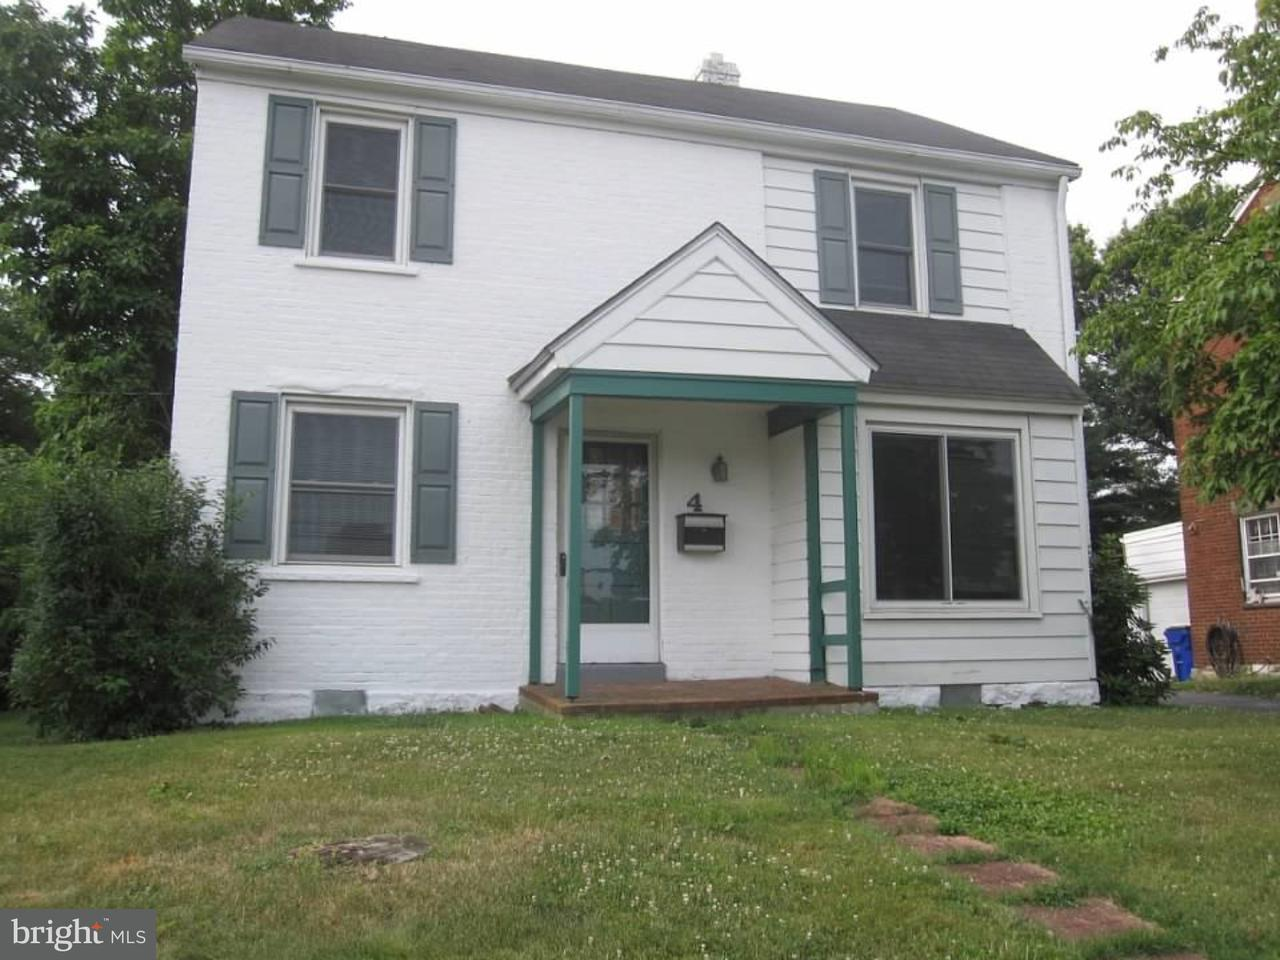 Single Family Home for Sale at 4 MURPHY Road Talleyville, Delaware 19803 United States